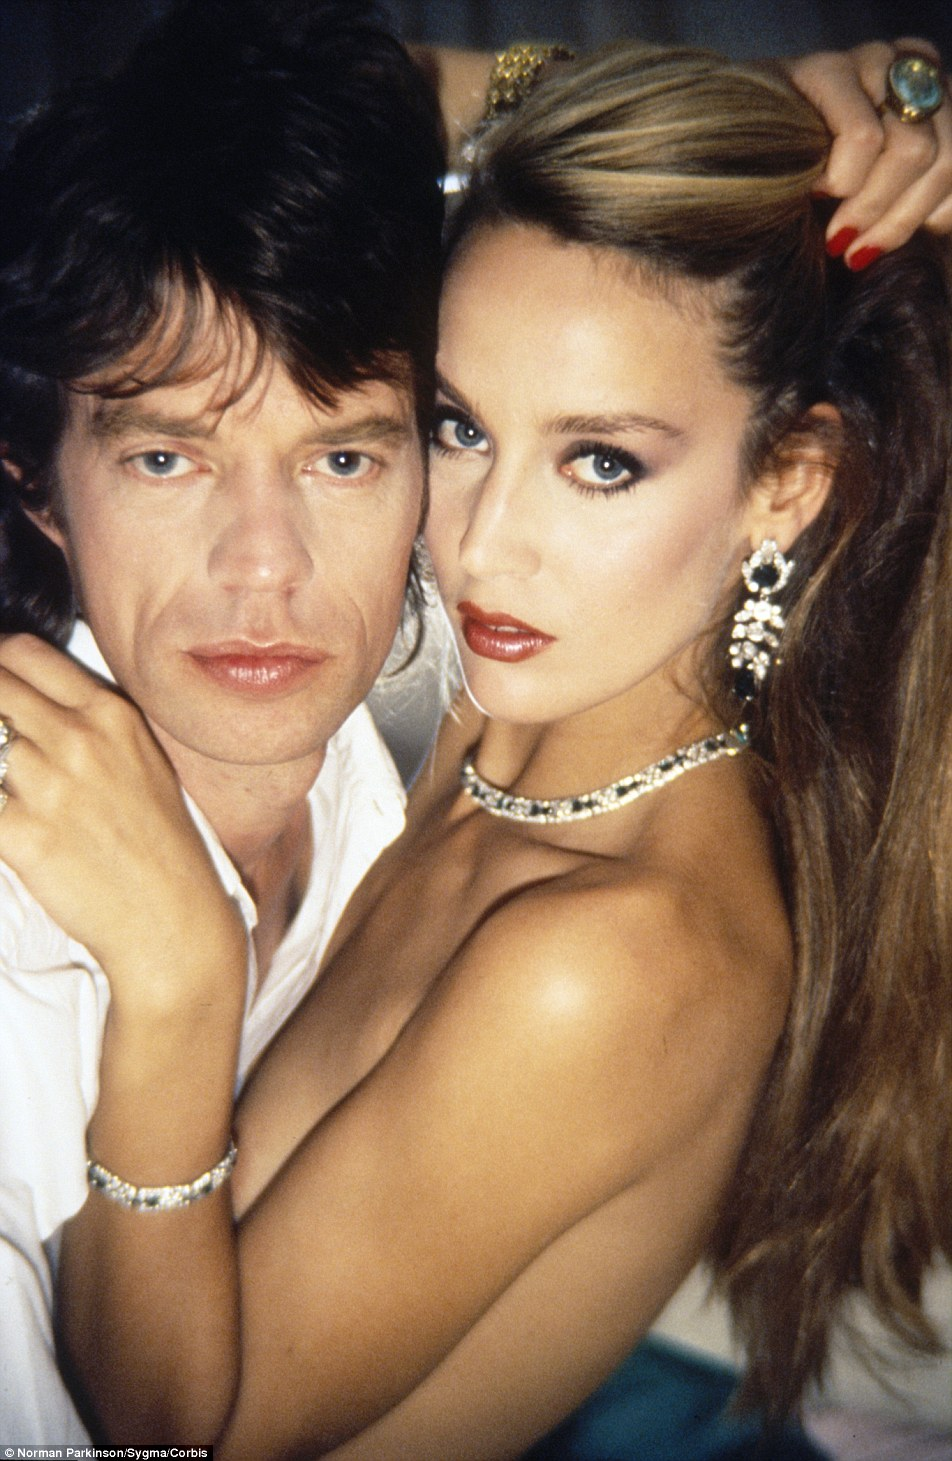 Miss Hall is known for her relationship with Mick Jagger, who she was with for more than 20 years. However, she had a star-studded relationship history long before meeting him